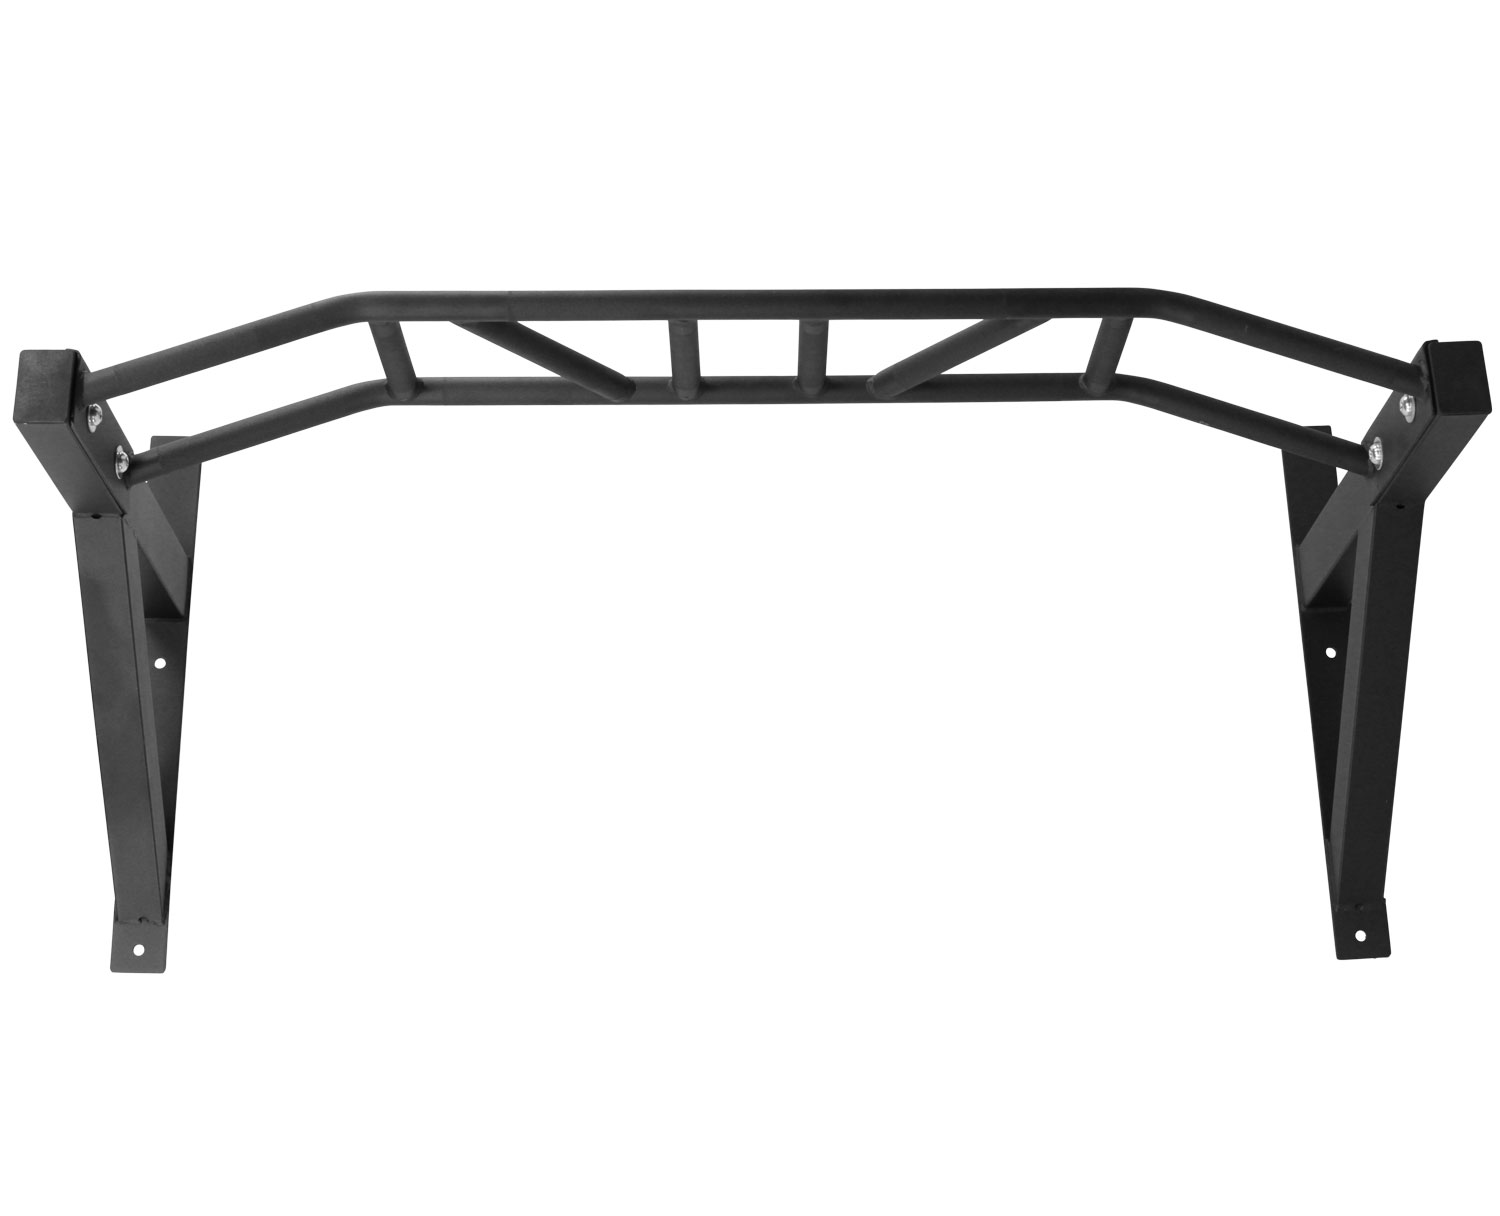 cPro9 Multi Grip Pull Up Bar